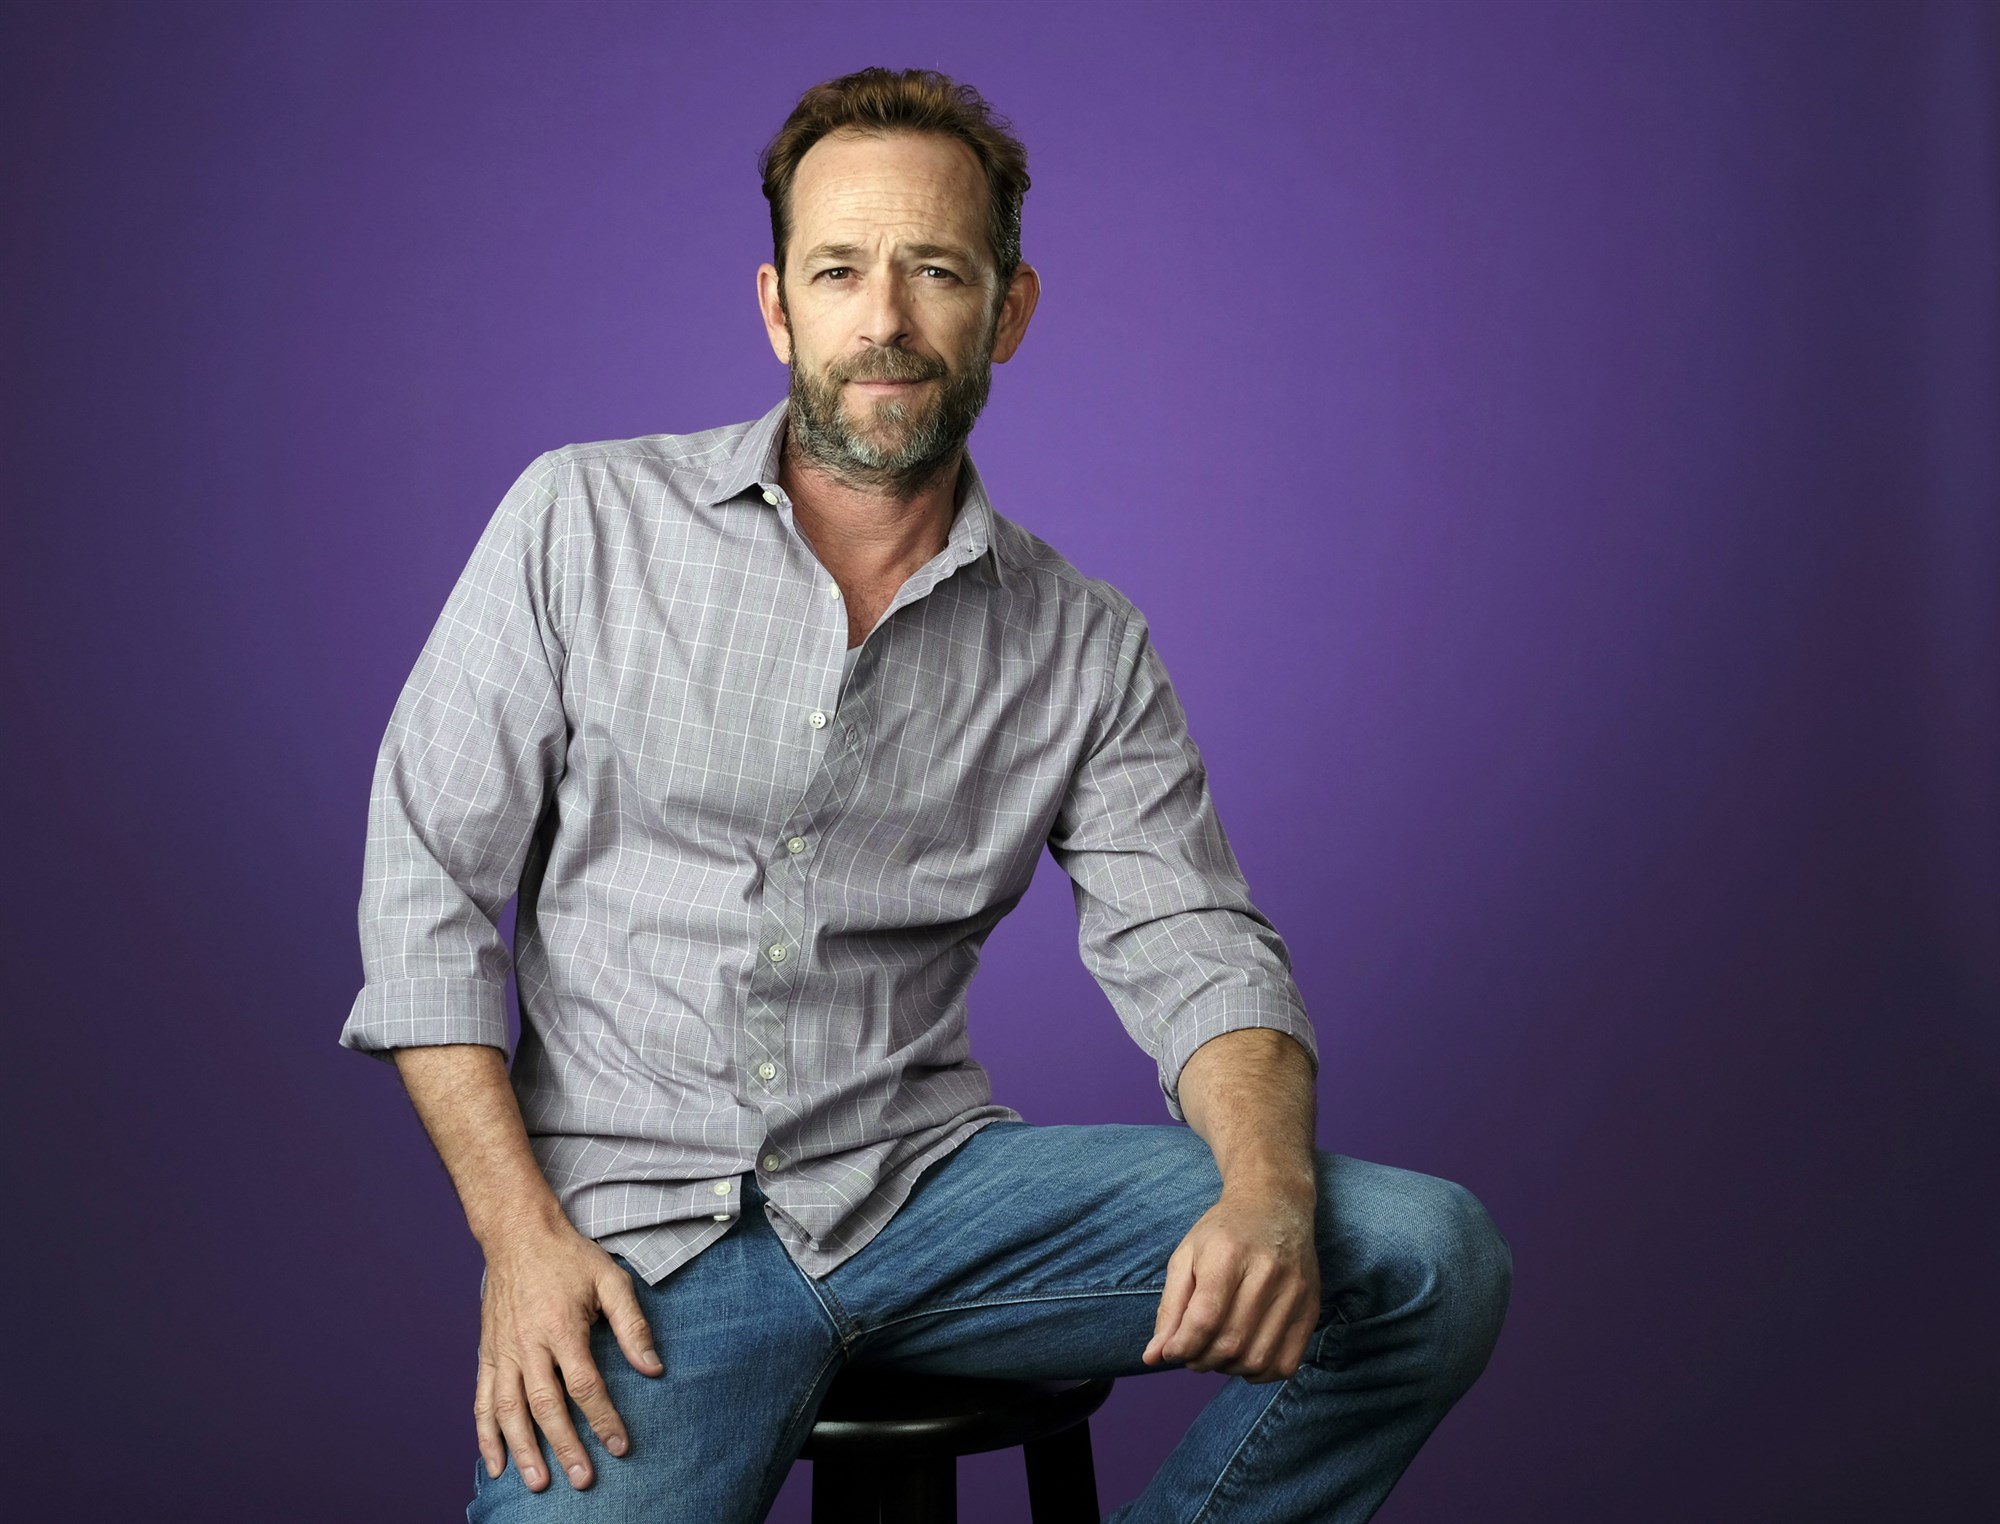 Actor Luke Perry Suffers Massive Heart Attack | Passes at Age 52